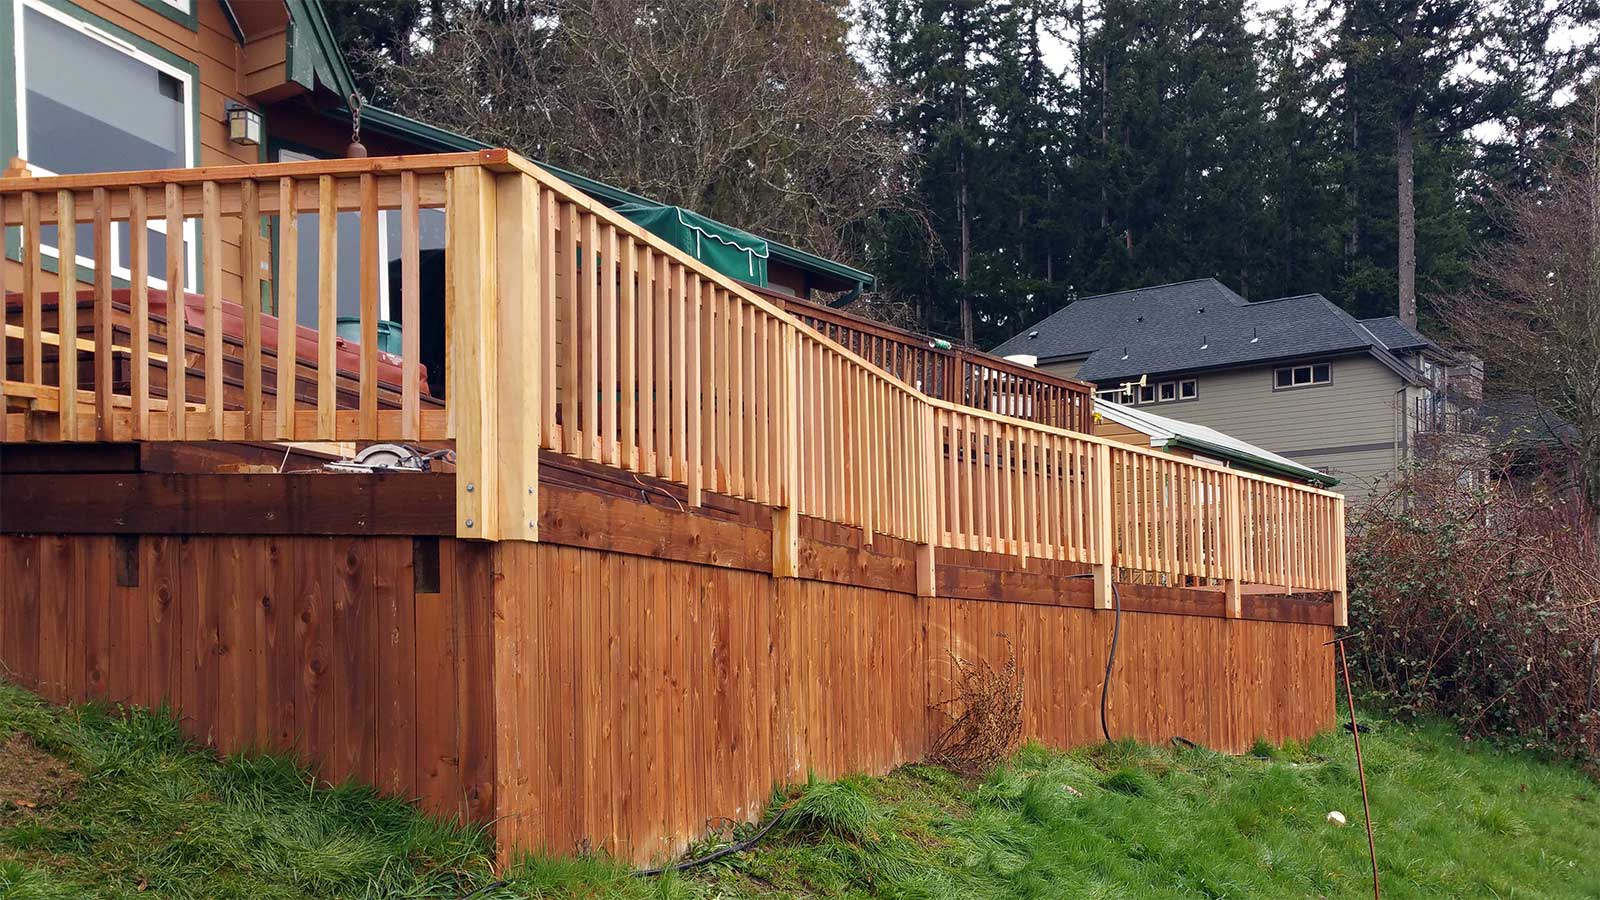 Yelm deck railing installation ajb landscaping fence ajb landscaping fence installed the railing for this existing deck in yelm baanklon Gallery